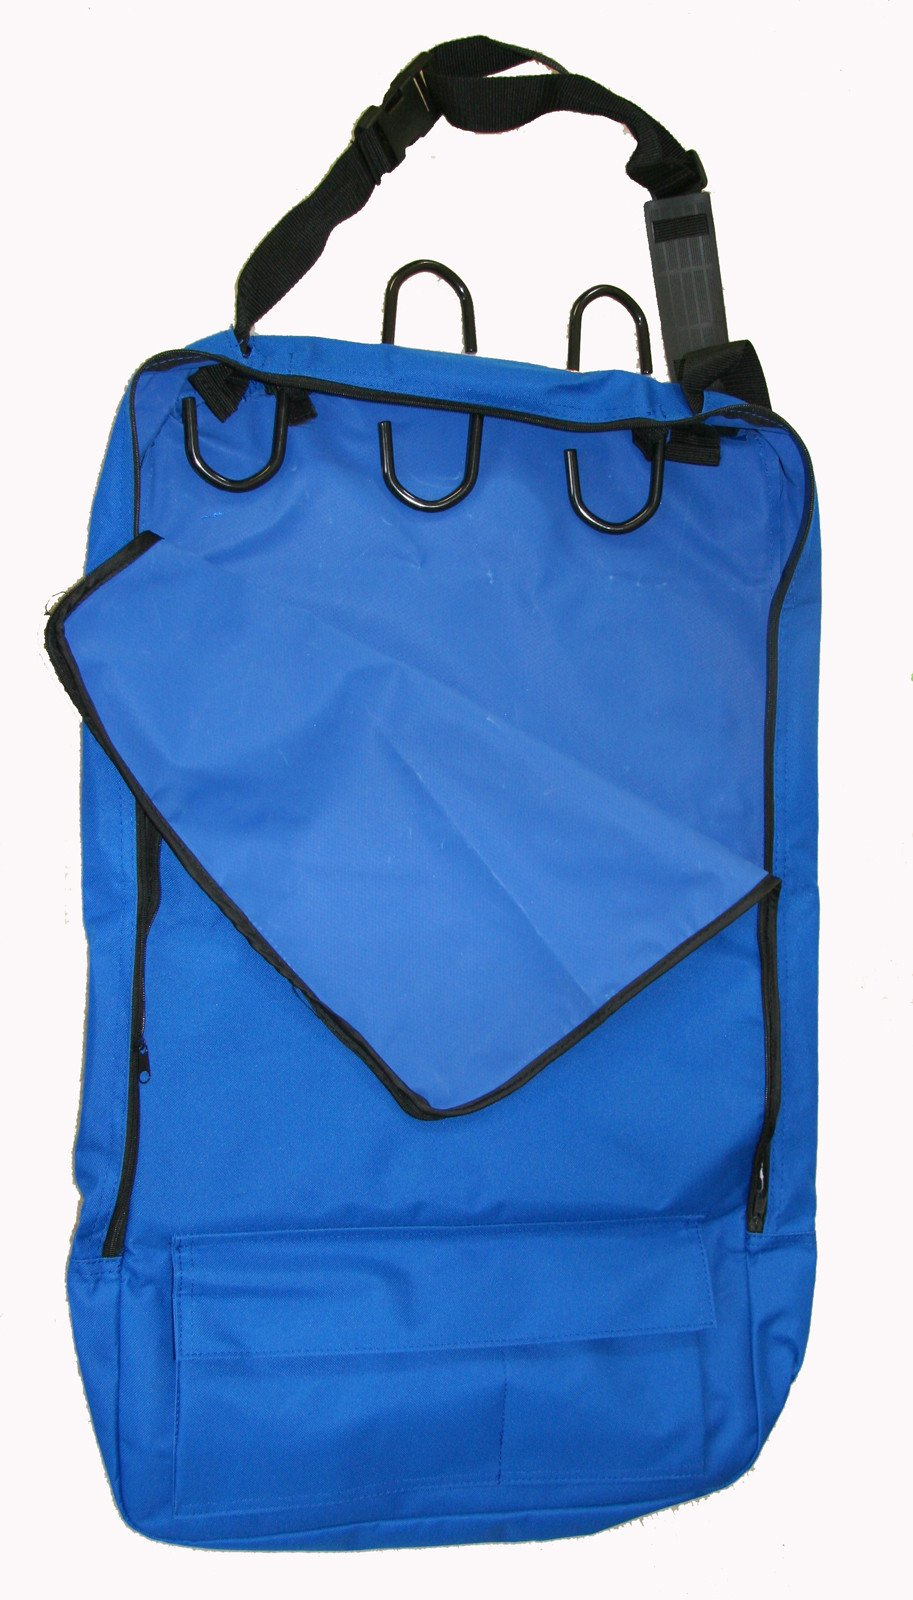 Deluxe Bridle Halter Tote Bag with Removable Tack Rack Royal Blue